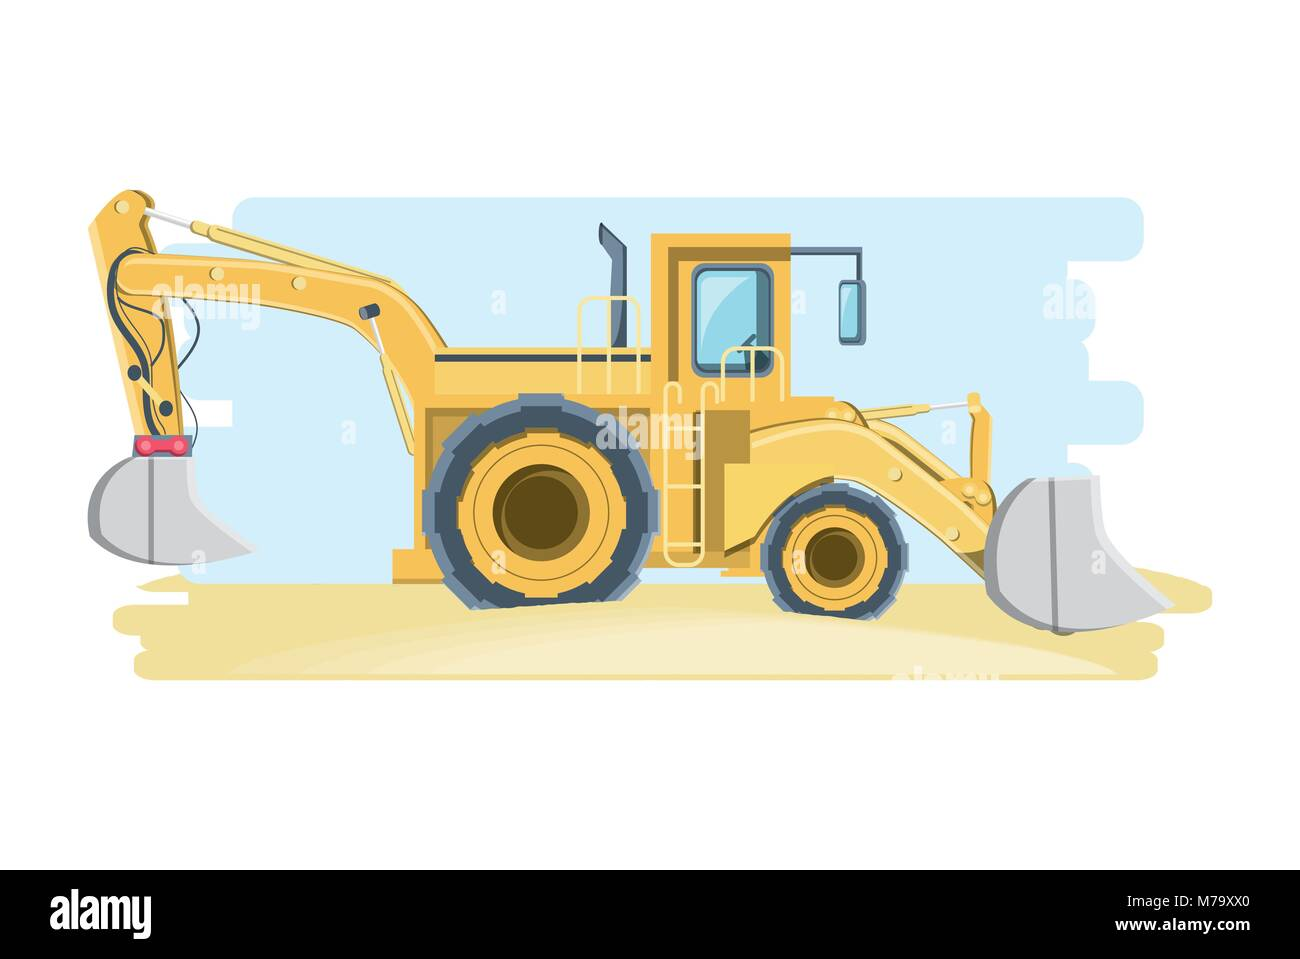 Construction Front And Backhoe Loader Truck Over White Background Colorful Design Vector Illustration